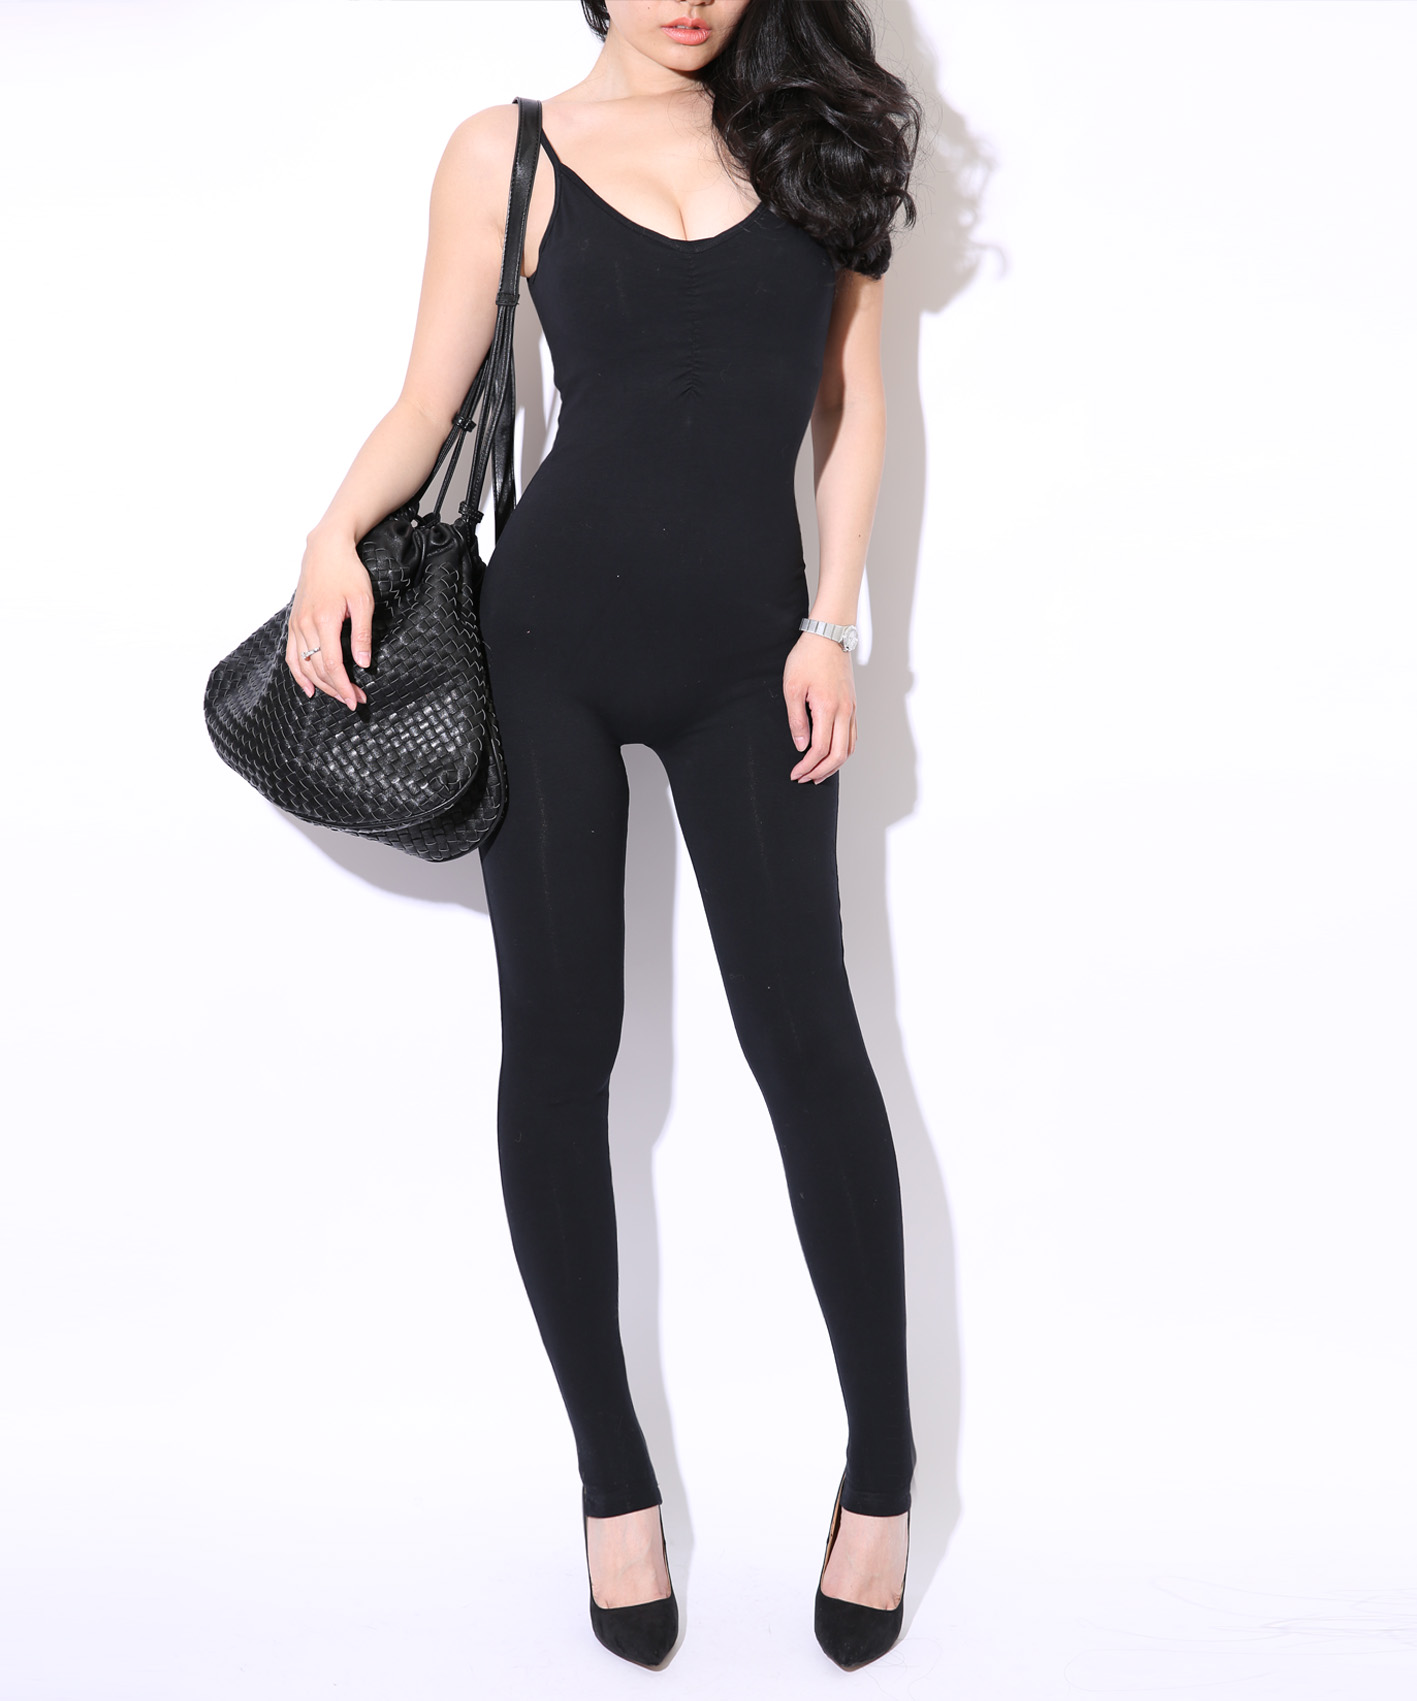 2013 Premium Cotton Spandex Sleeveless Bodysuit Seamless Sexy One Size Bodysuit Jumpsuits Leggings For Women Black Body Leggings-inSocks & Hosiery from Apparel & Accessories on Aliexpress.com